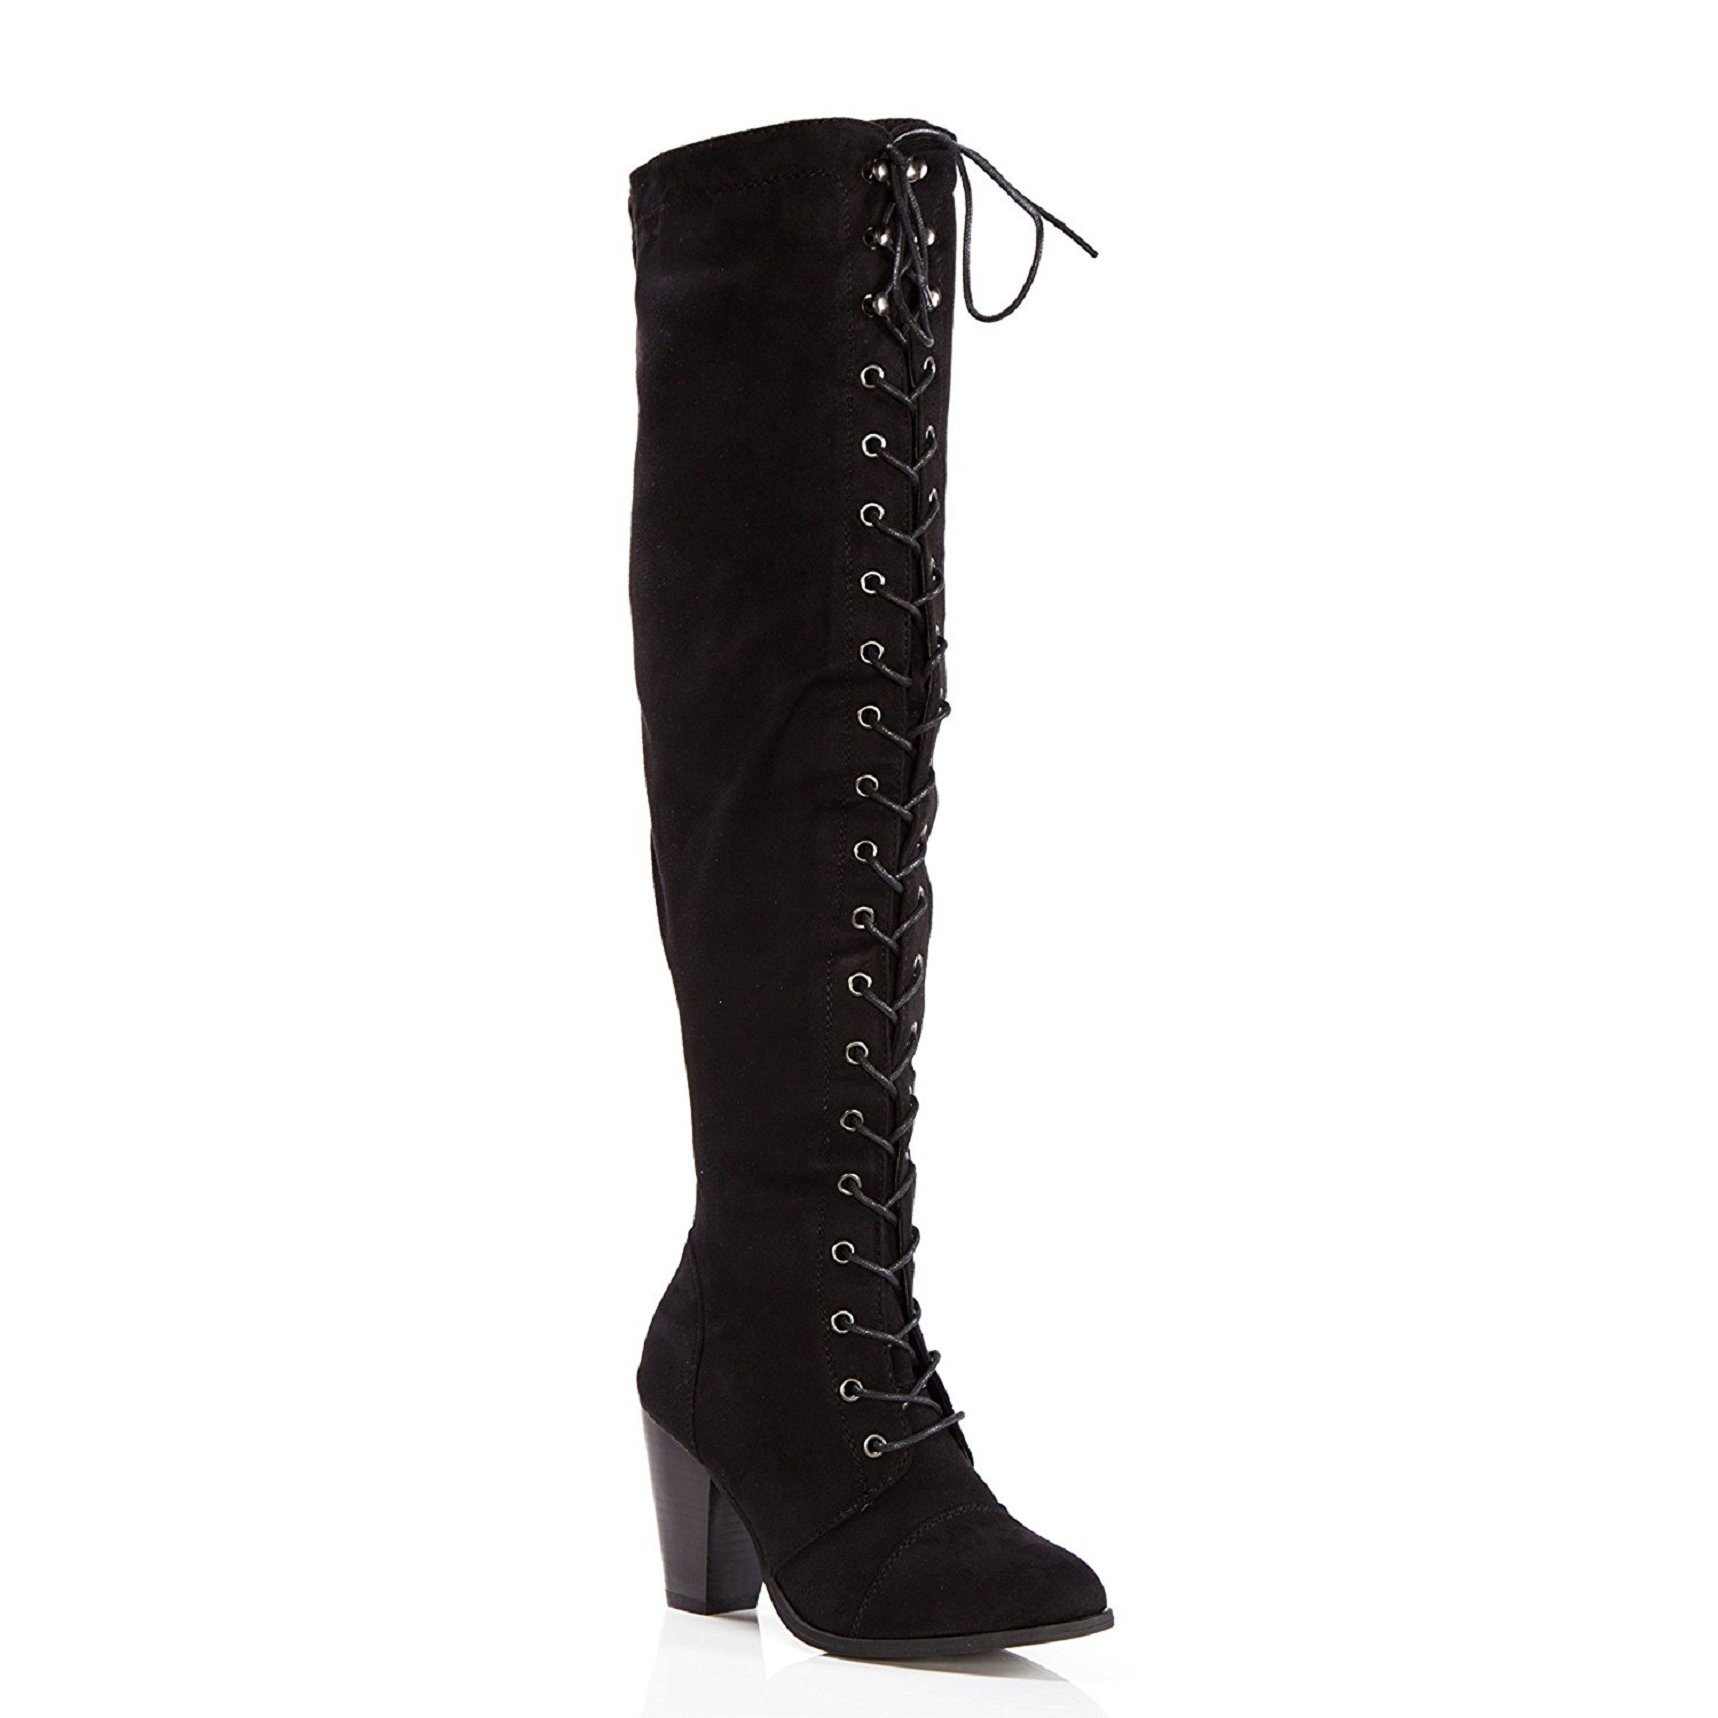 c37d16ad84bc ShoBeautiful Womens Chunky Heel Over The Knee High Riding Boots Lace Up  Corset Thigh High Combat Boots Winter Shoes Black 10